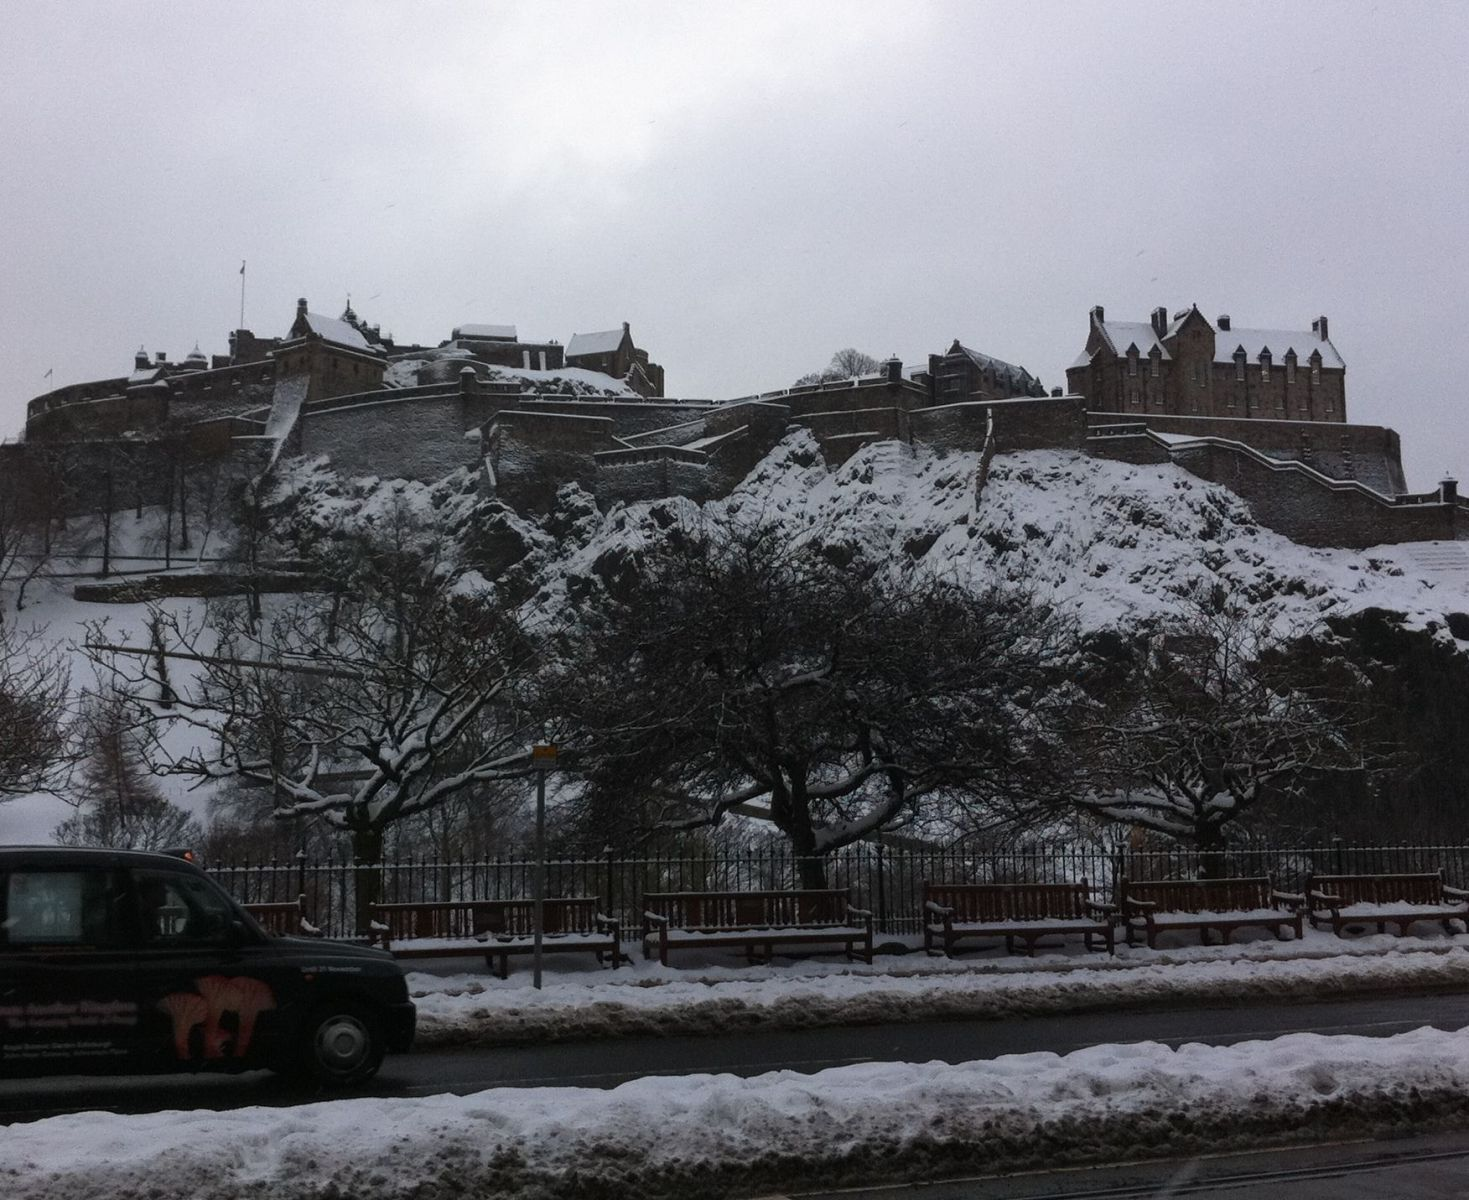 People carrier hire Edinburgh airport - the castle